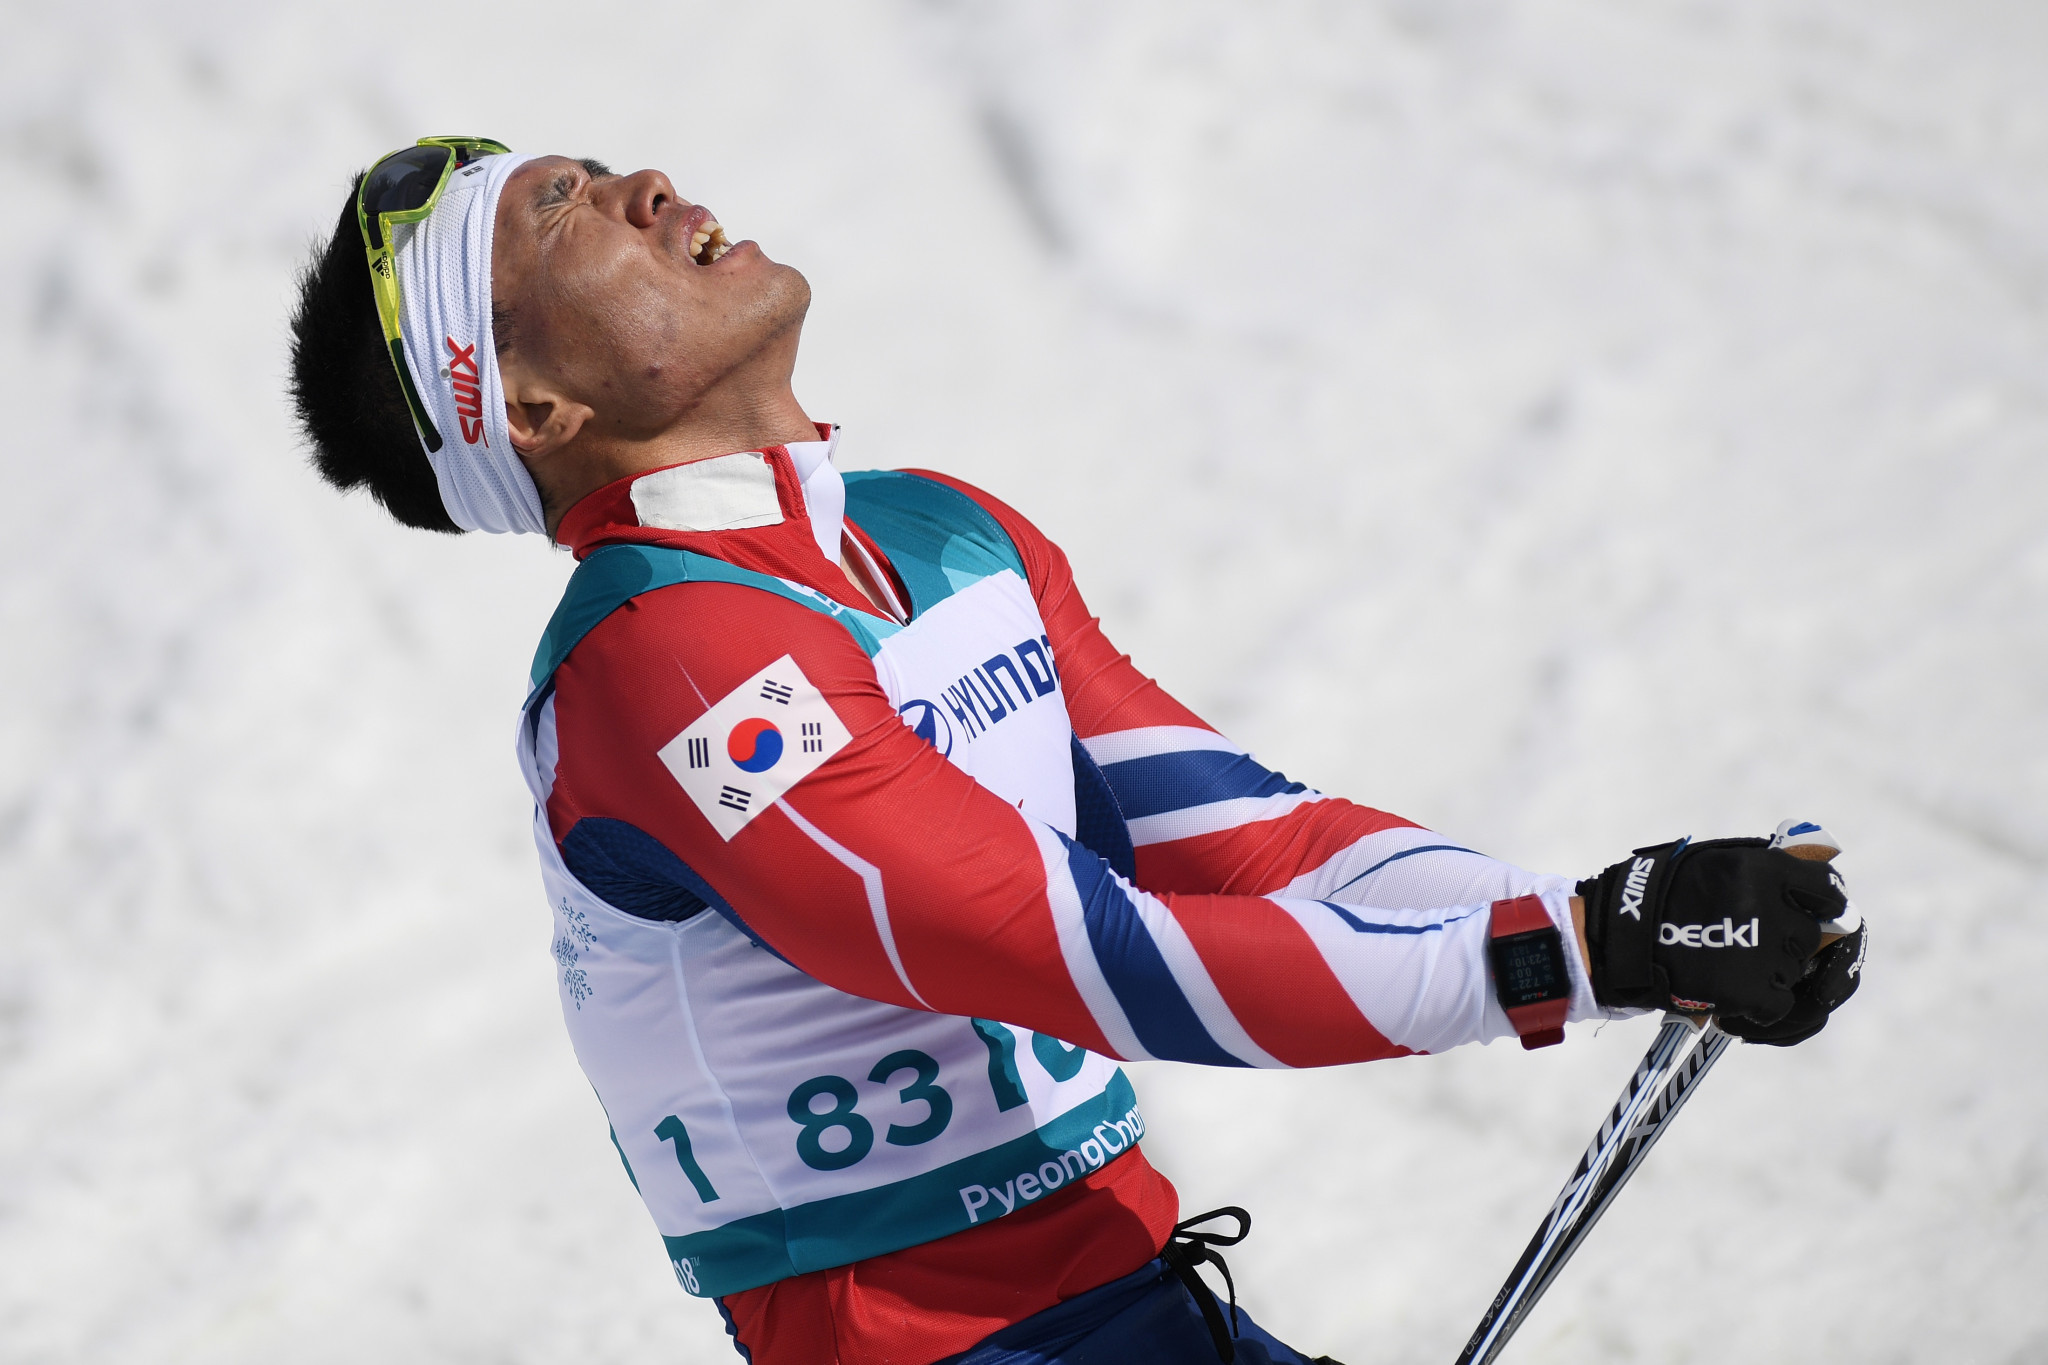 South Korea's Sin Eui Hyun won the men's cross-country skiing 7.5 kilometres sitting race to claim the host country's first-ever Winter Paralympic gold medal on day eight of Pyeongchang 2018 ©Getty Images